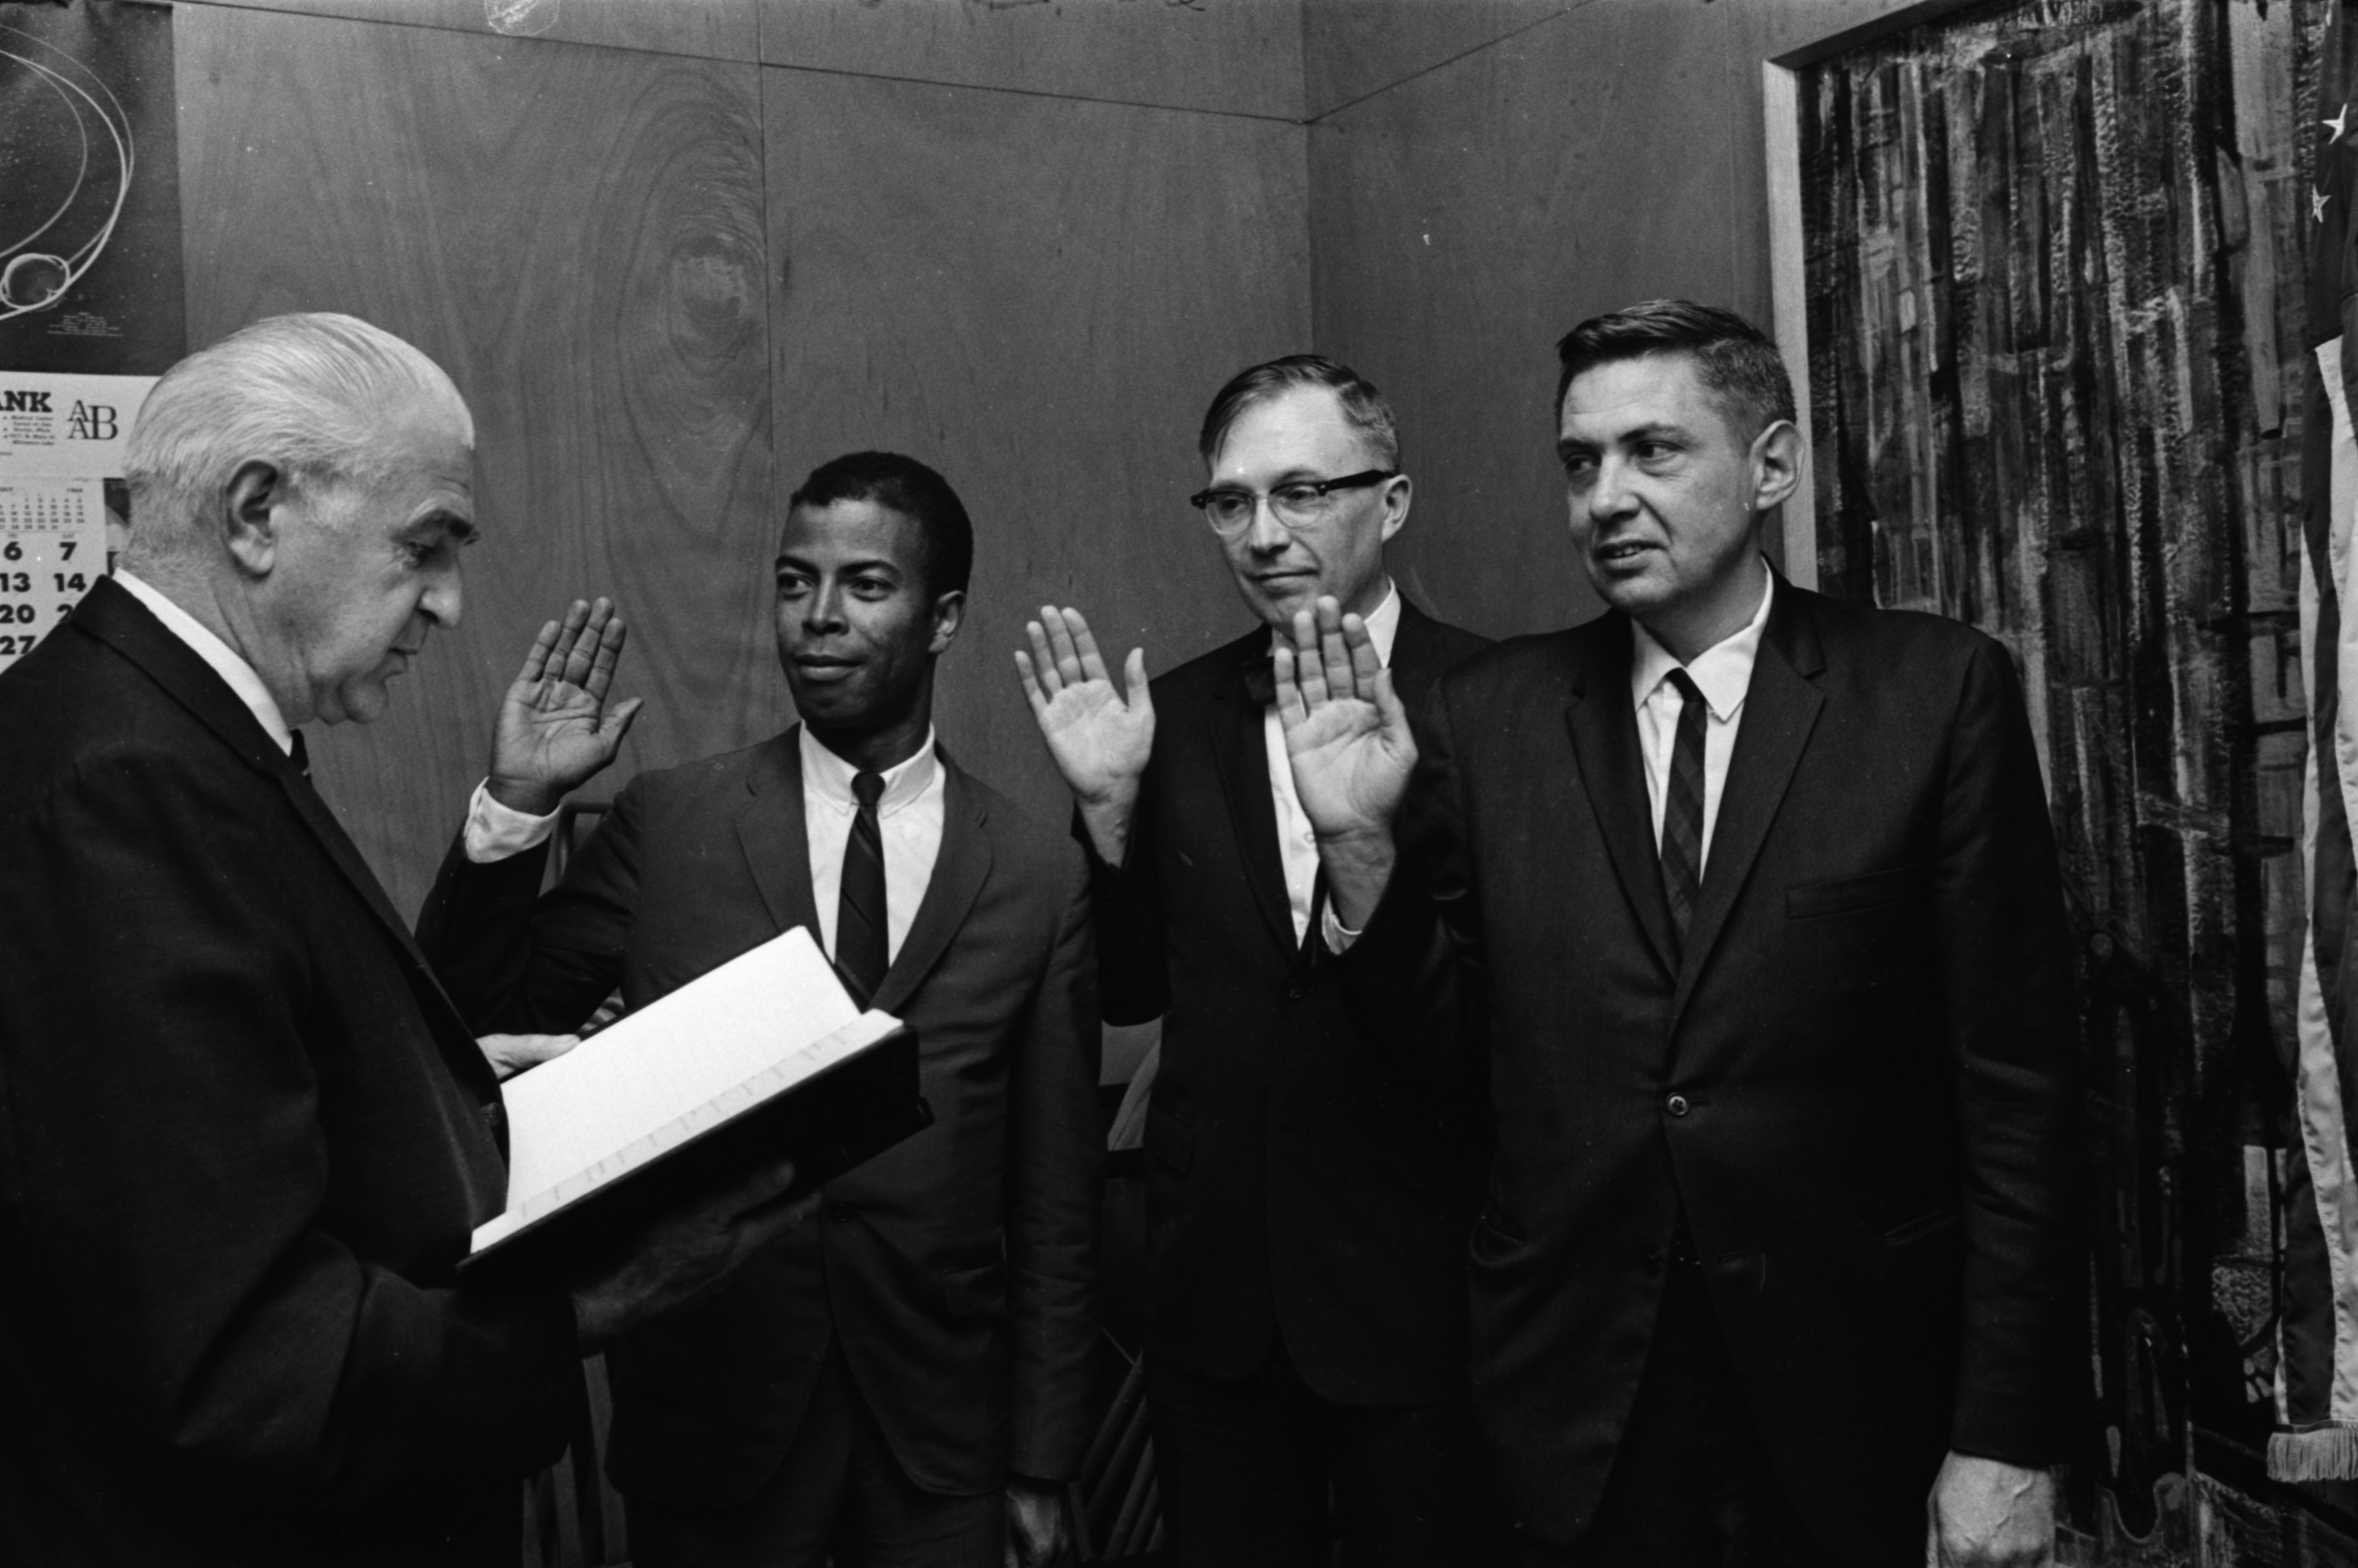 Image from New Trustees Take Oath Of Office, July 1969